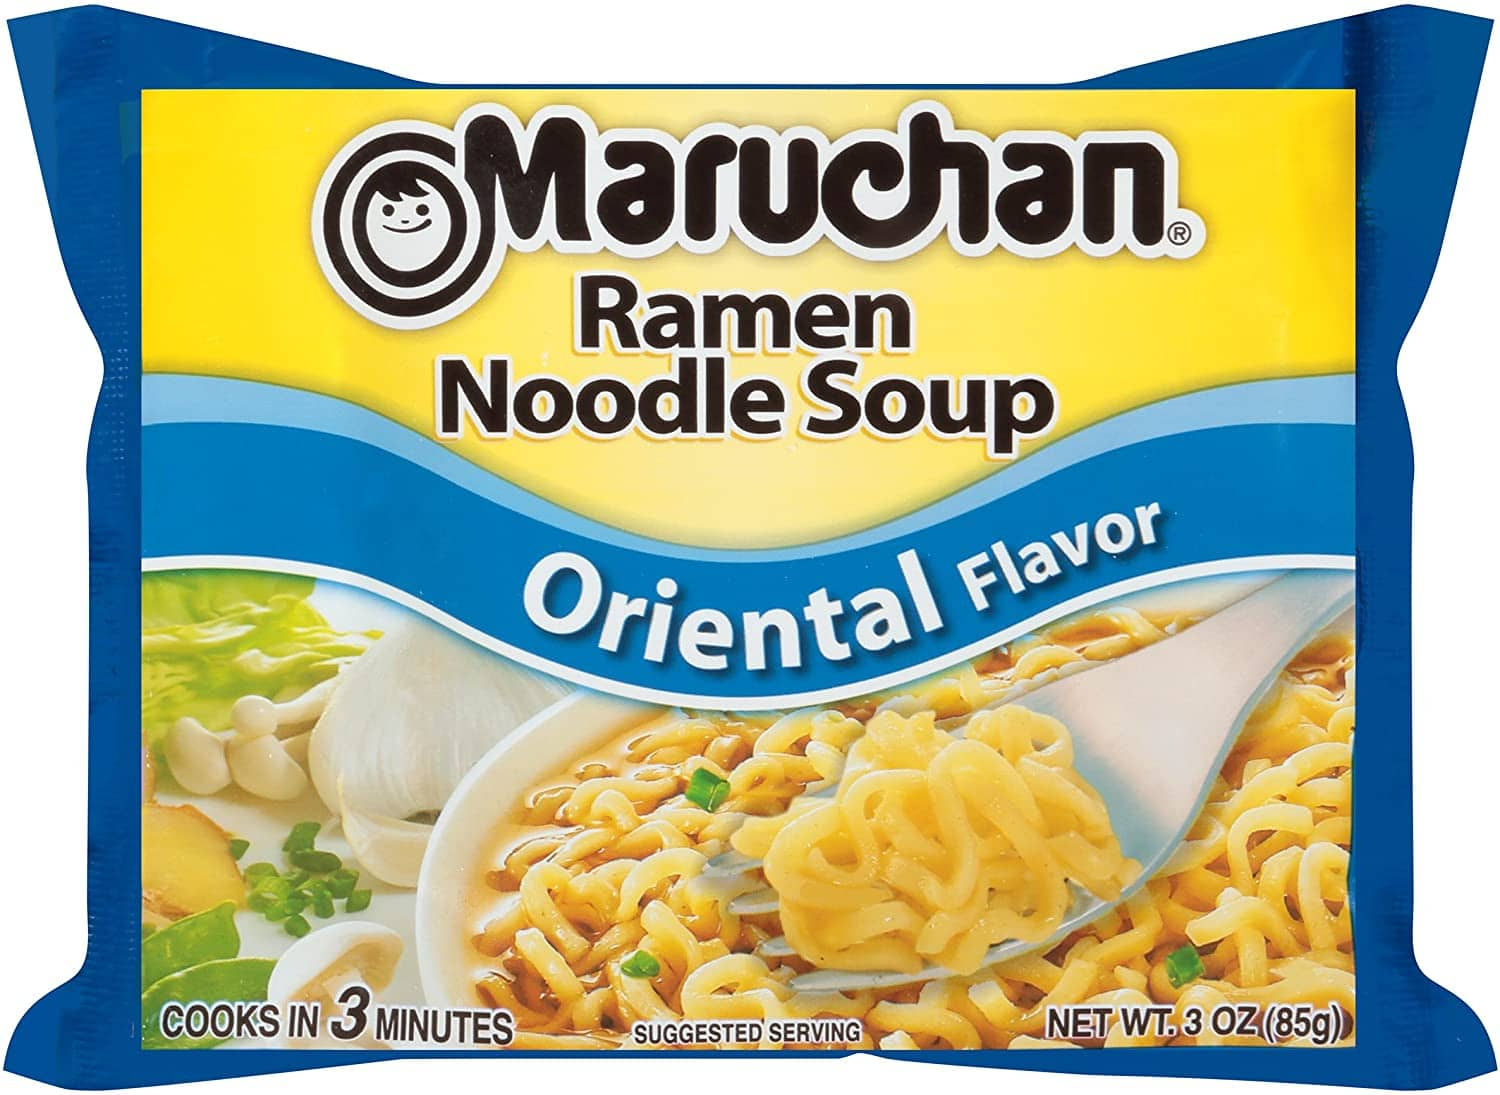 Maruchan Flavor Ramen Noodles, Soy Sauce, 3 Ounce (Pack of 24) - $6.00 - Amazon